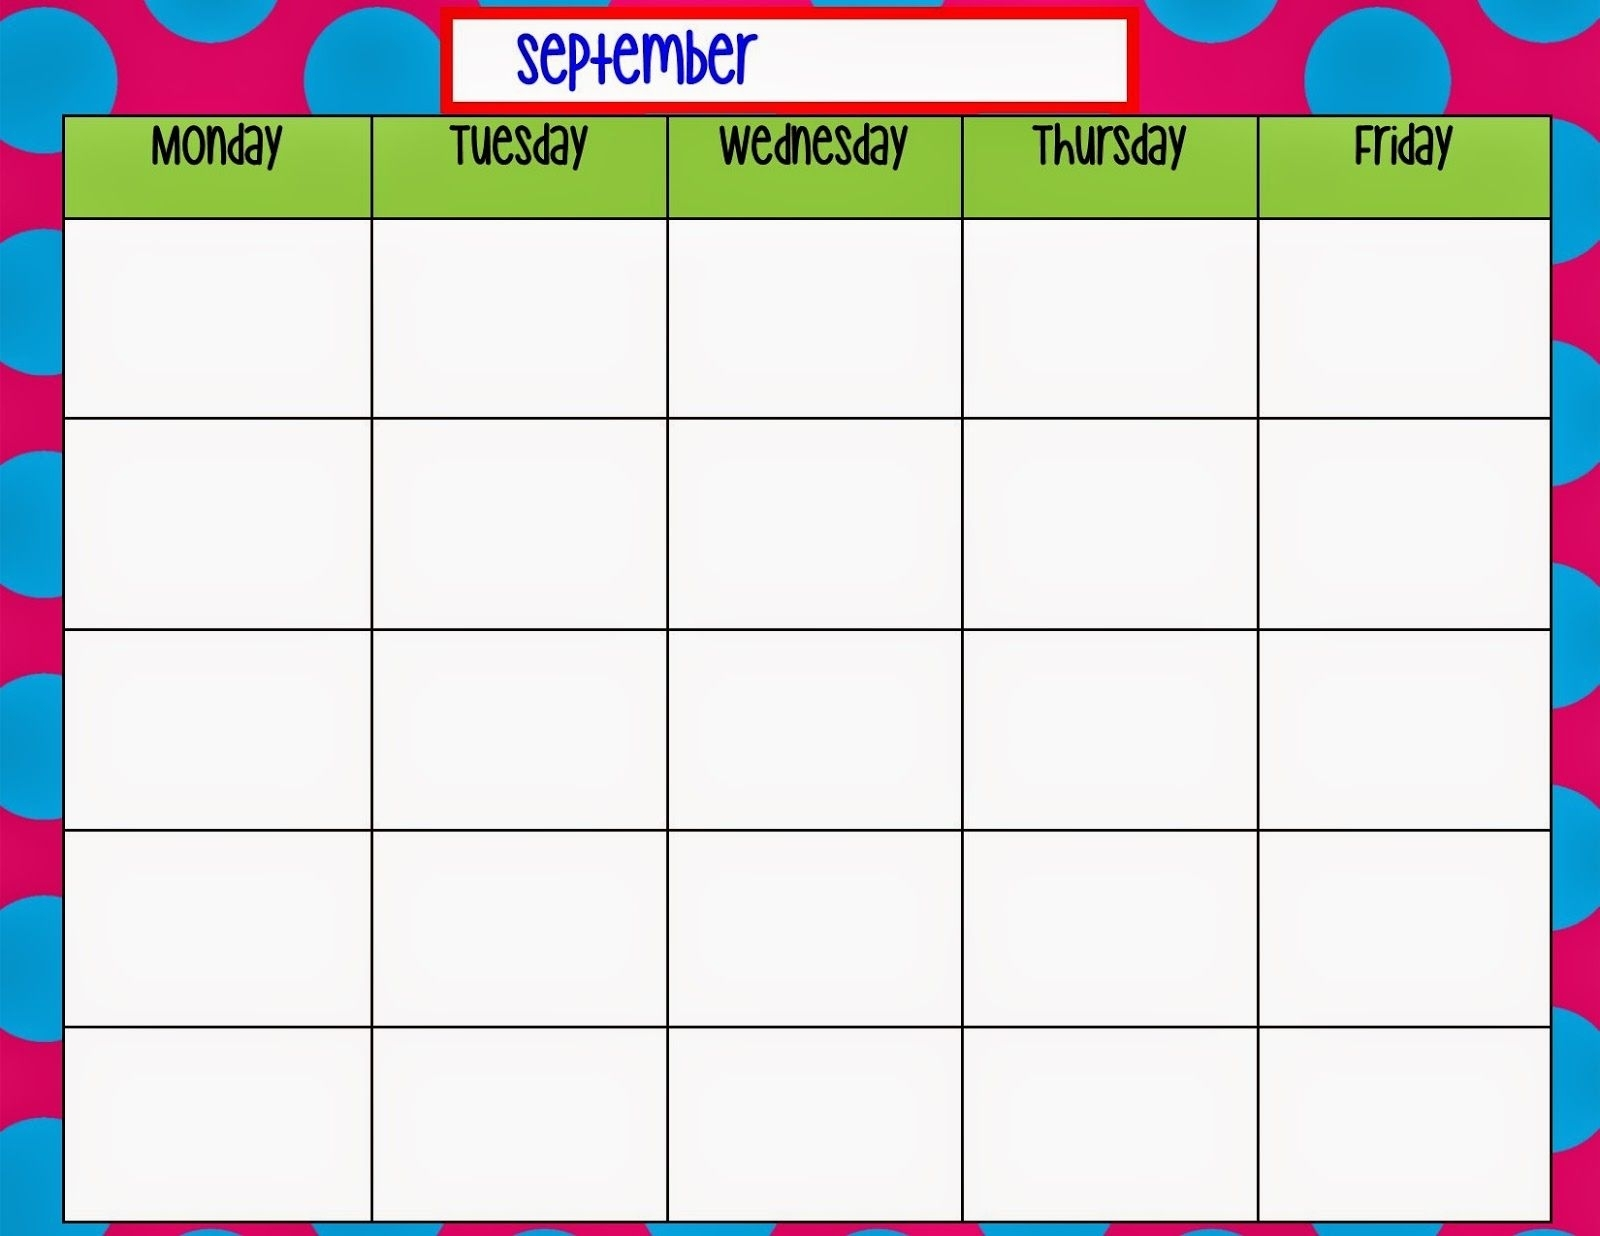 Monday Through Friday Calendar Template | Preschool | Printable within Blank Calendar With Only Weekdays